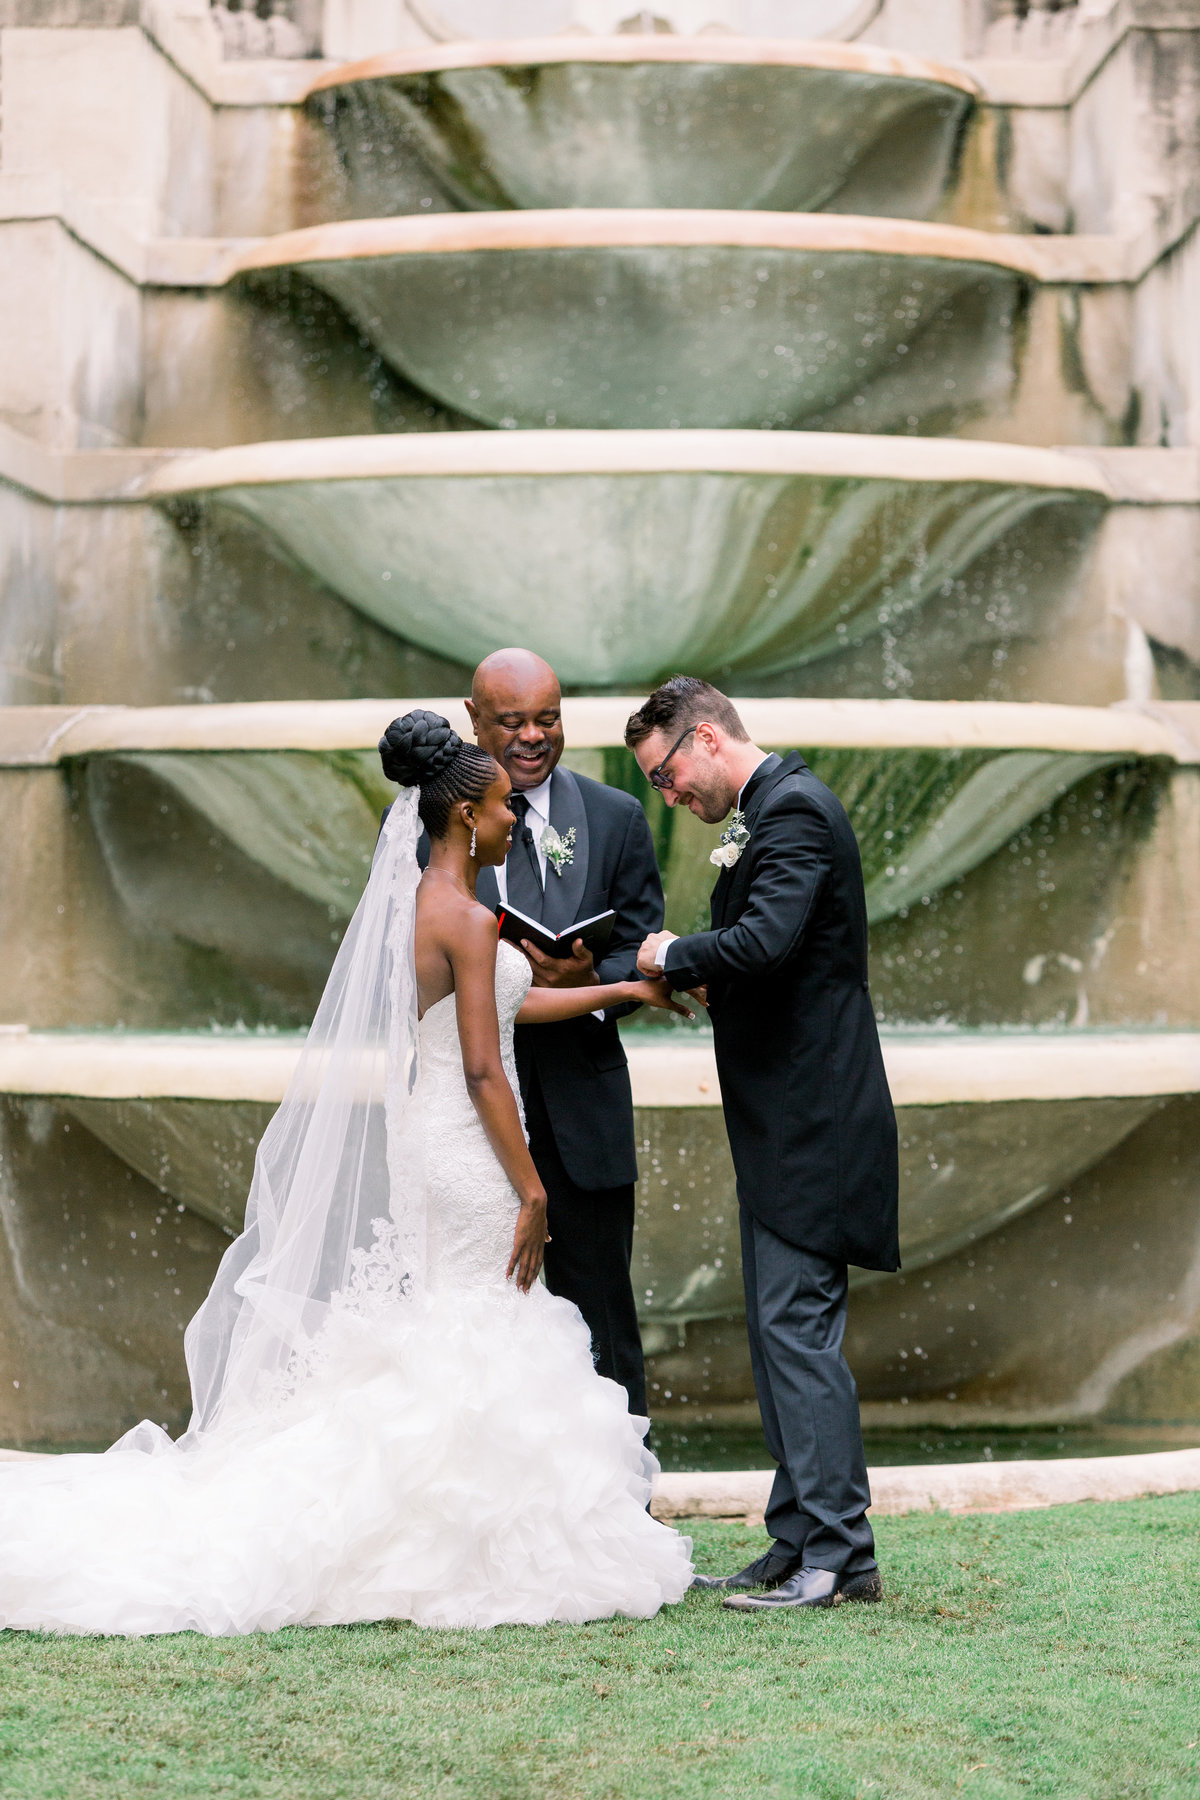 A joyful, romantic wedding at the Historic Swan House in Atlanta, Georgia.